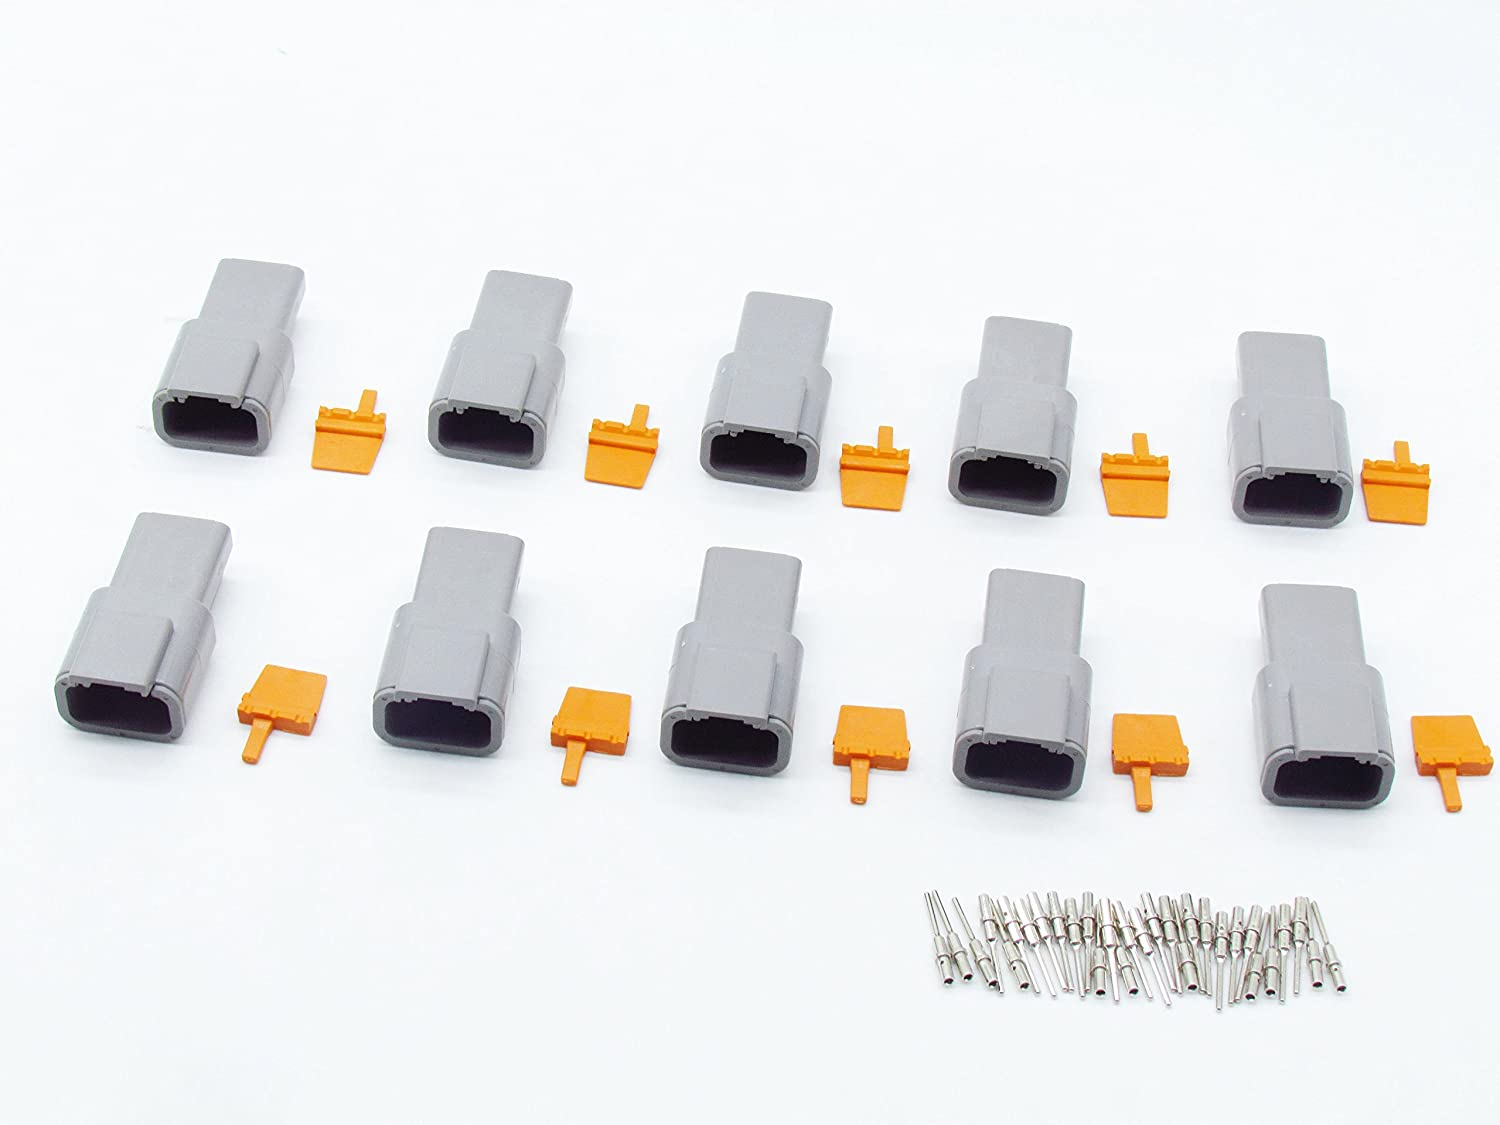 CNKF 10 Sets DTM gray PLUG 3 position way male auto connector DTM04-3P ATM04-3P with terminals pins